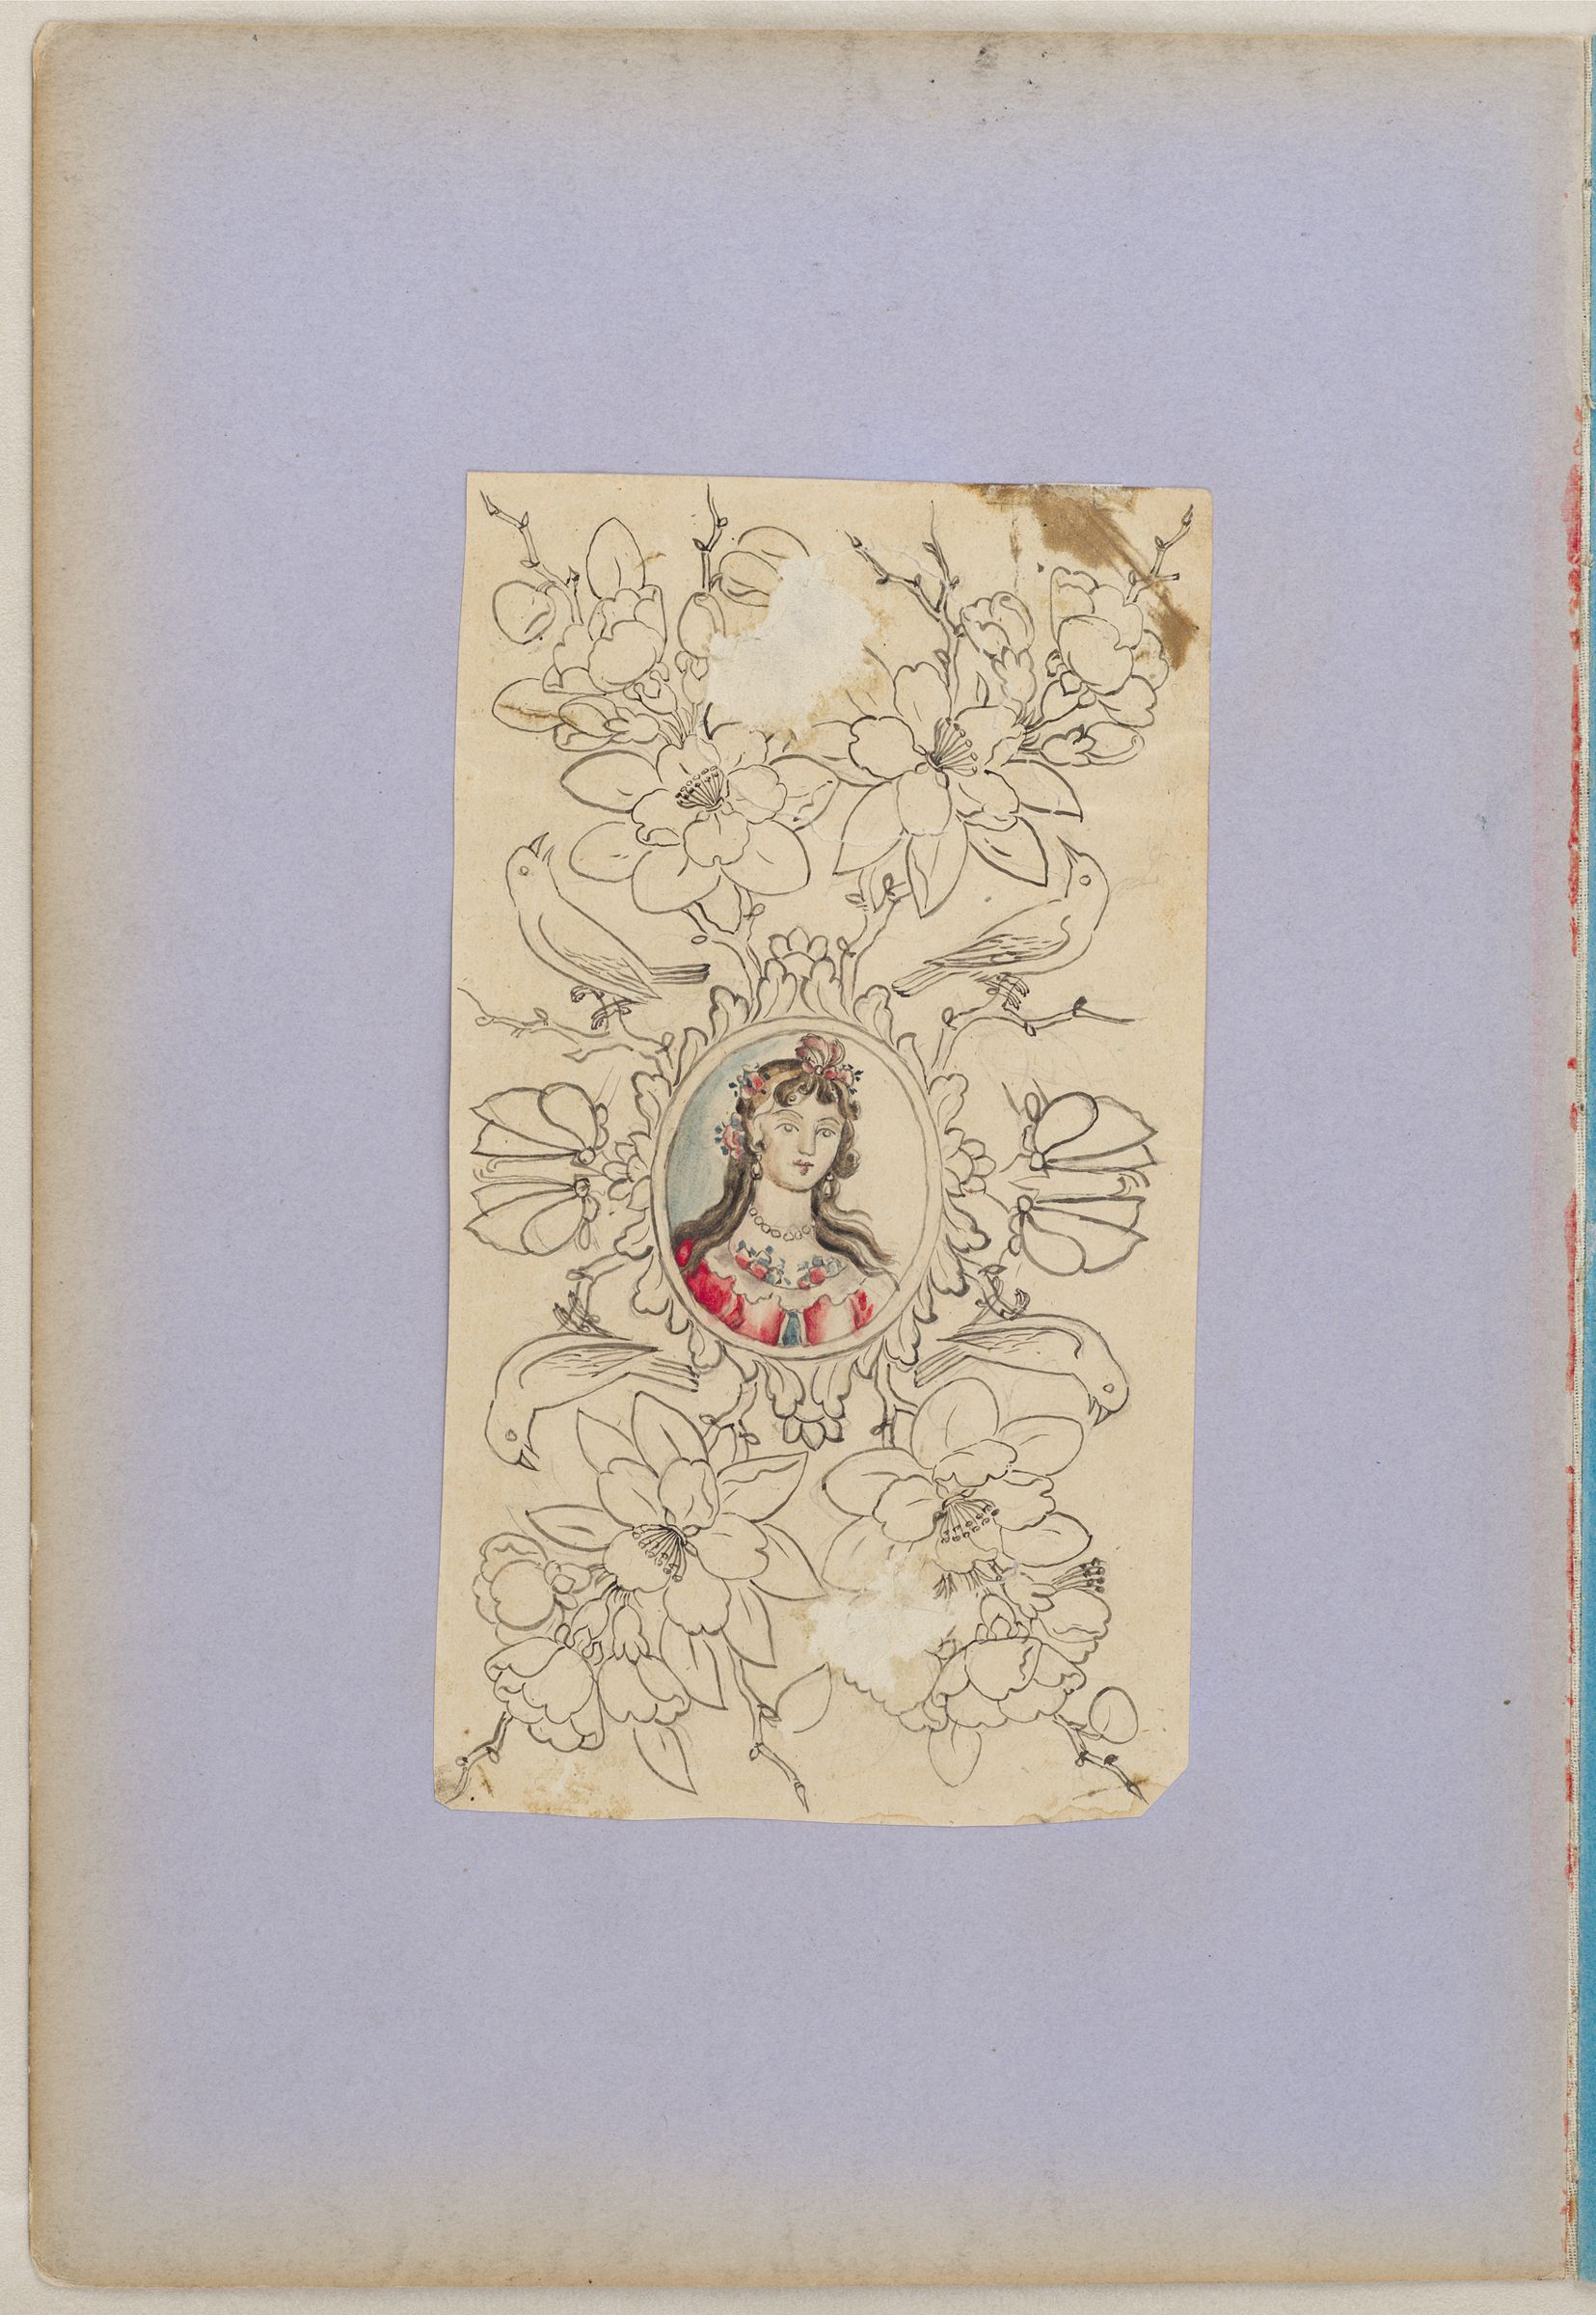 Folio 3 From An Album Of Artists' Drawings From Qajar Iran: Medallion With Portrait Bust Of A European Woman, Enclosed In Symmetrical Composition Of Scrollwork, Birds, Flowers, And Butterflies   (Recto); Hunter With Falcon, Hound, And Rifle (Verso)